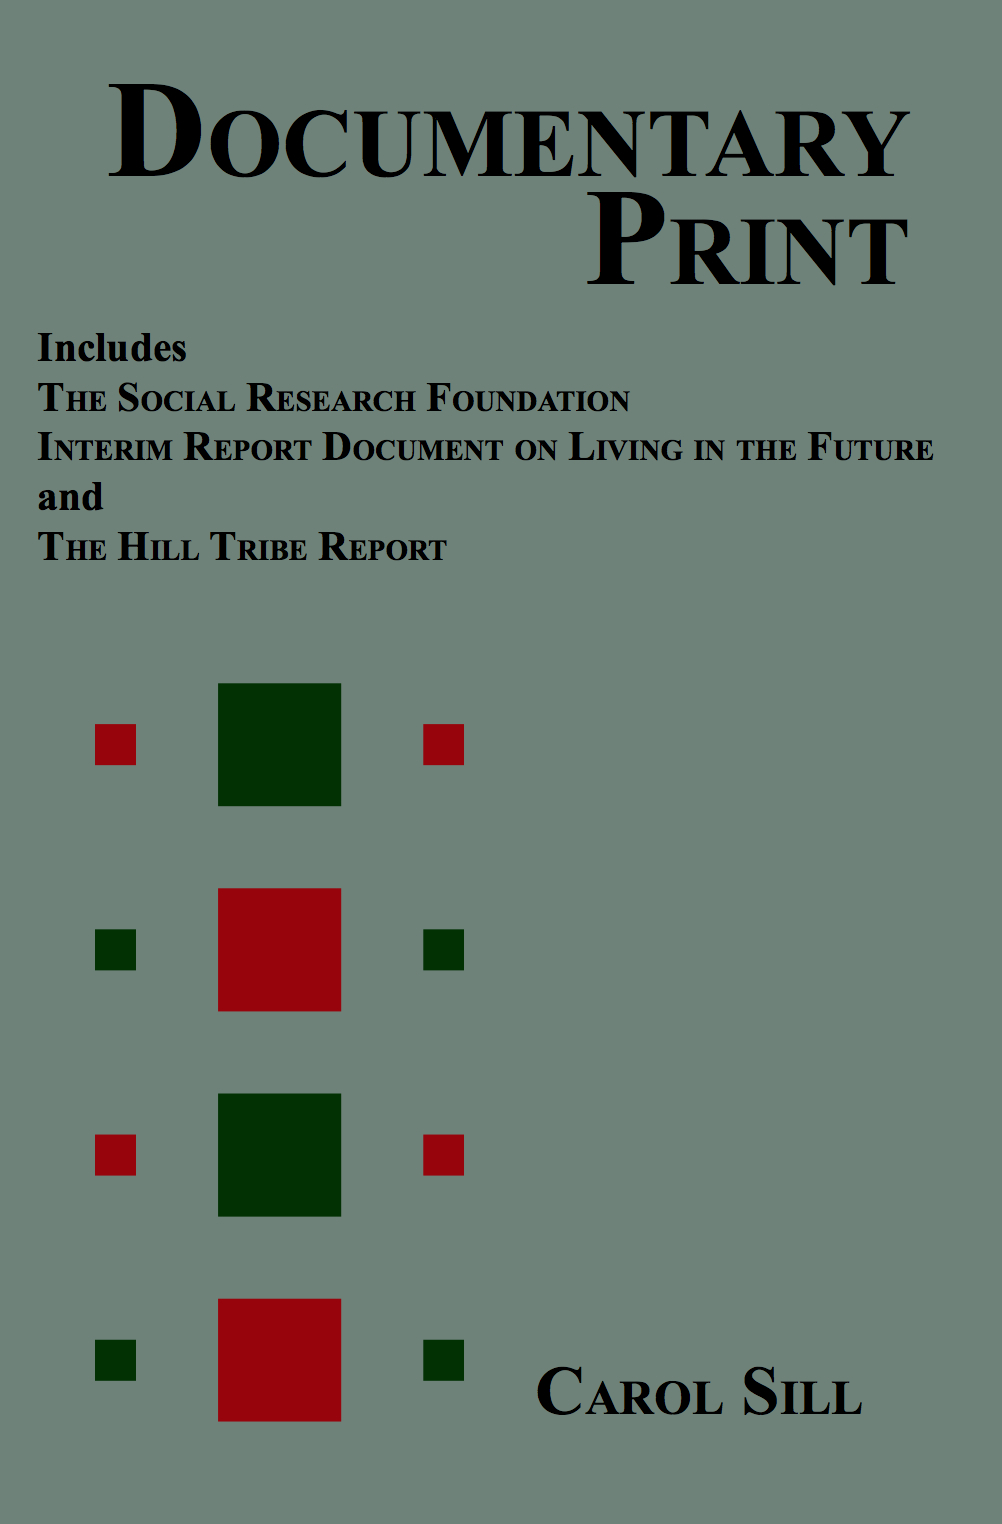 documentary print front cover